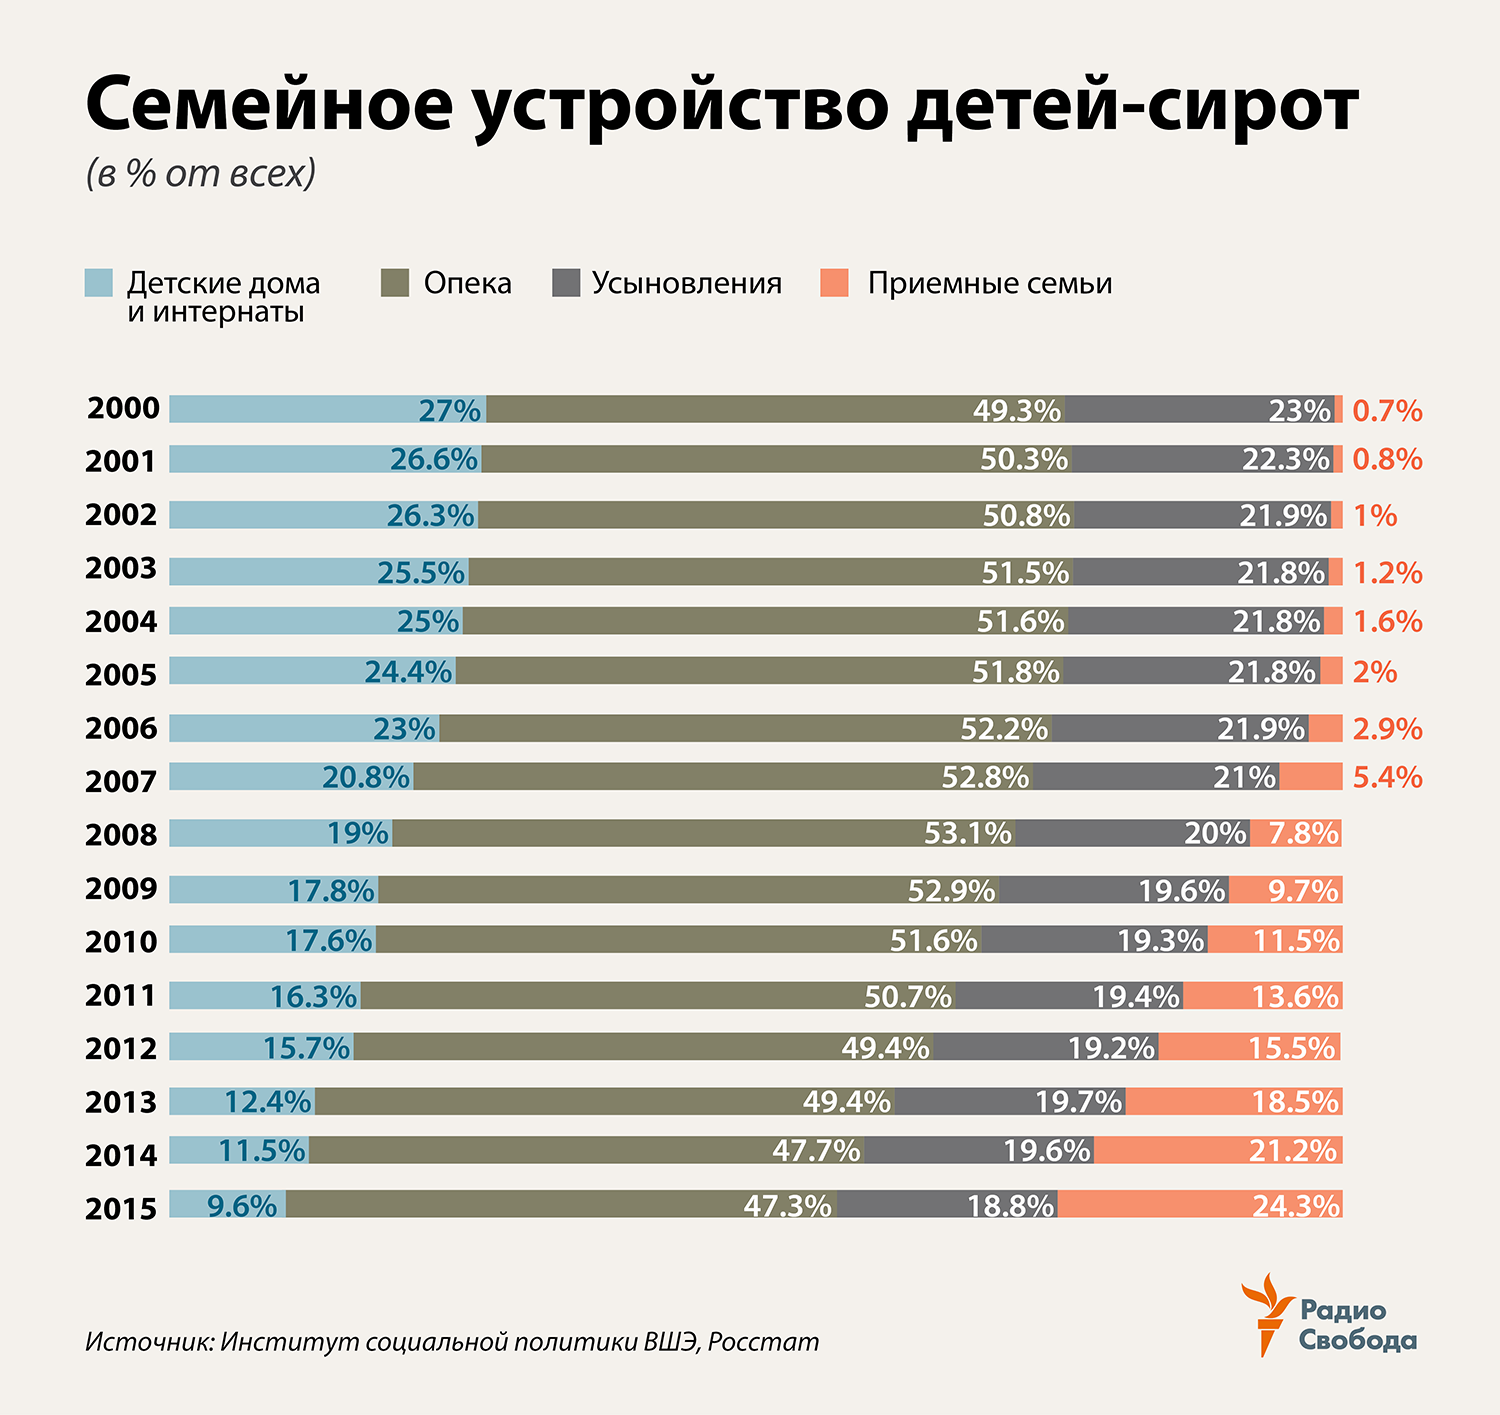 Russia-Factograph-Orphans-Placements-Structure-2000-2015